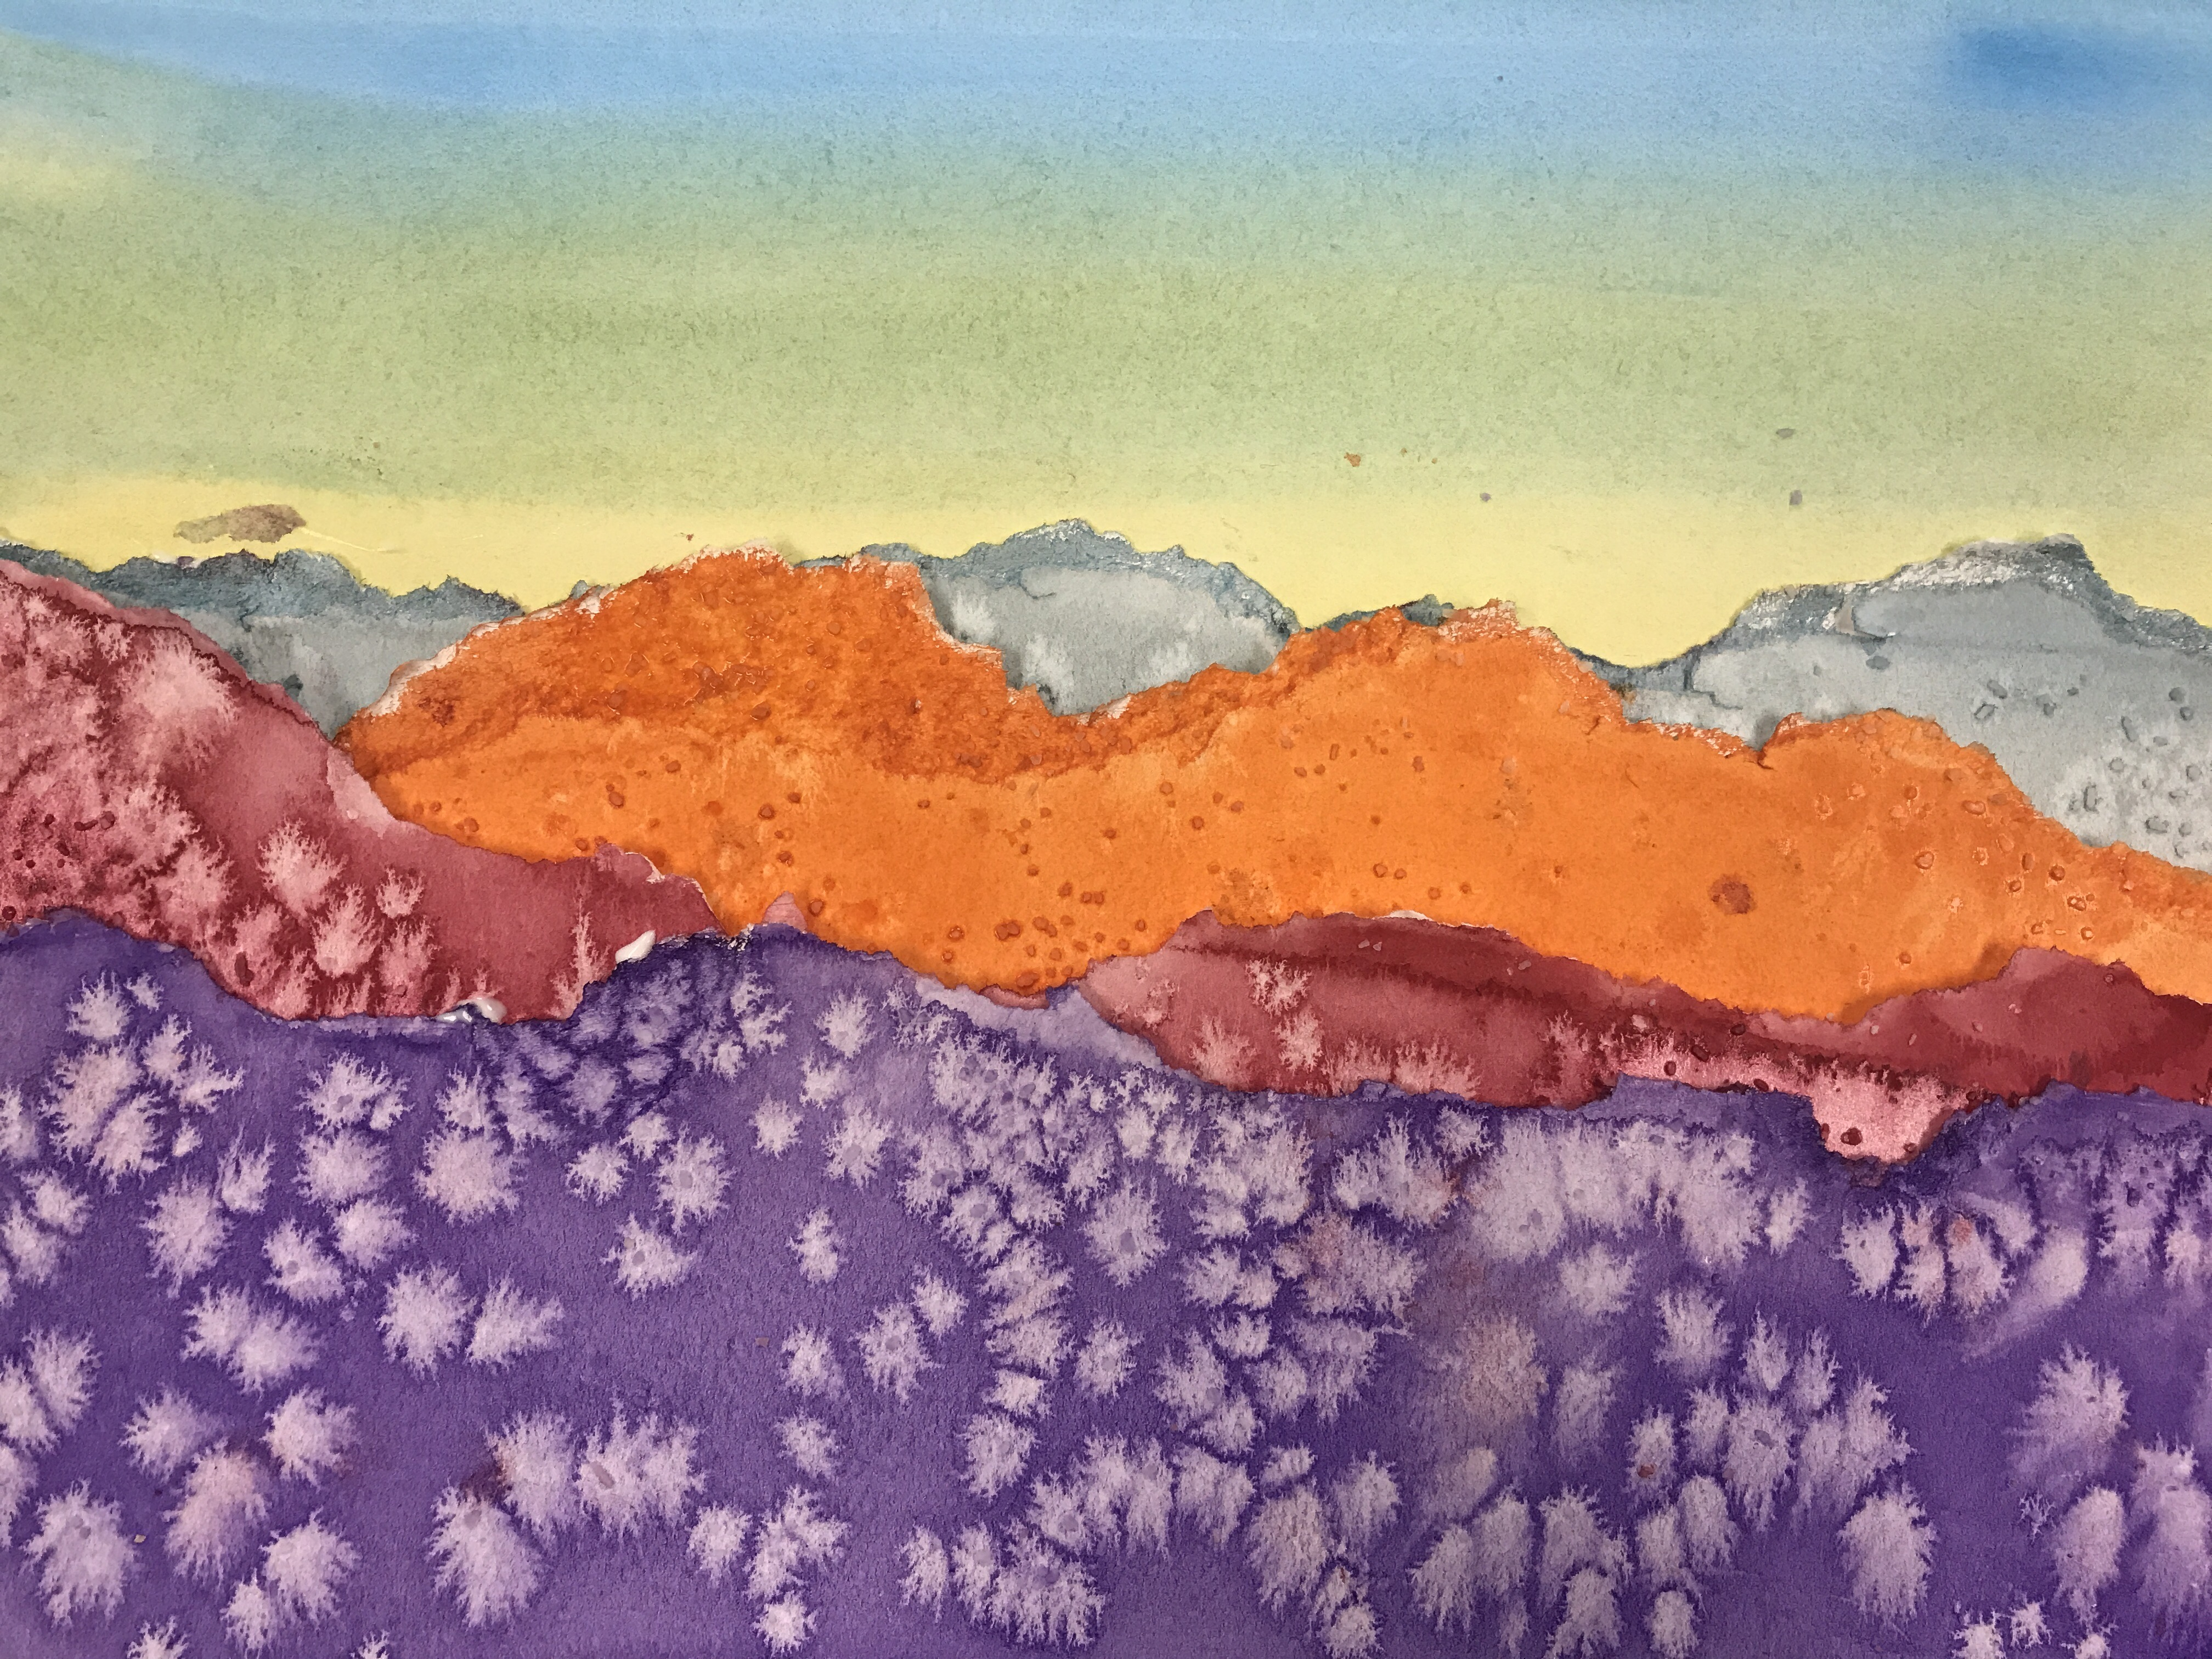 WINE DOWN - Torn Watercolor Landscapes!